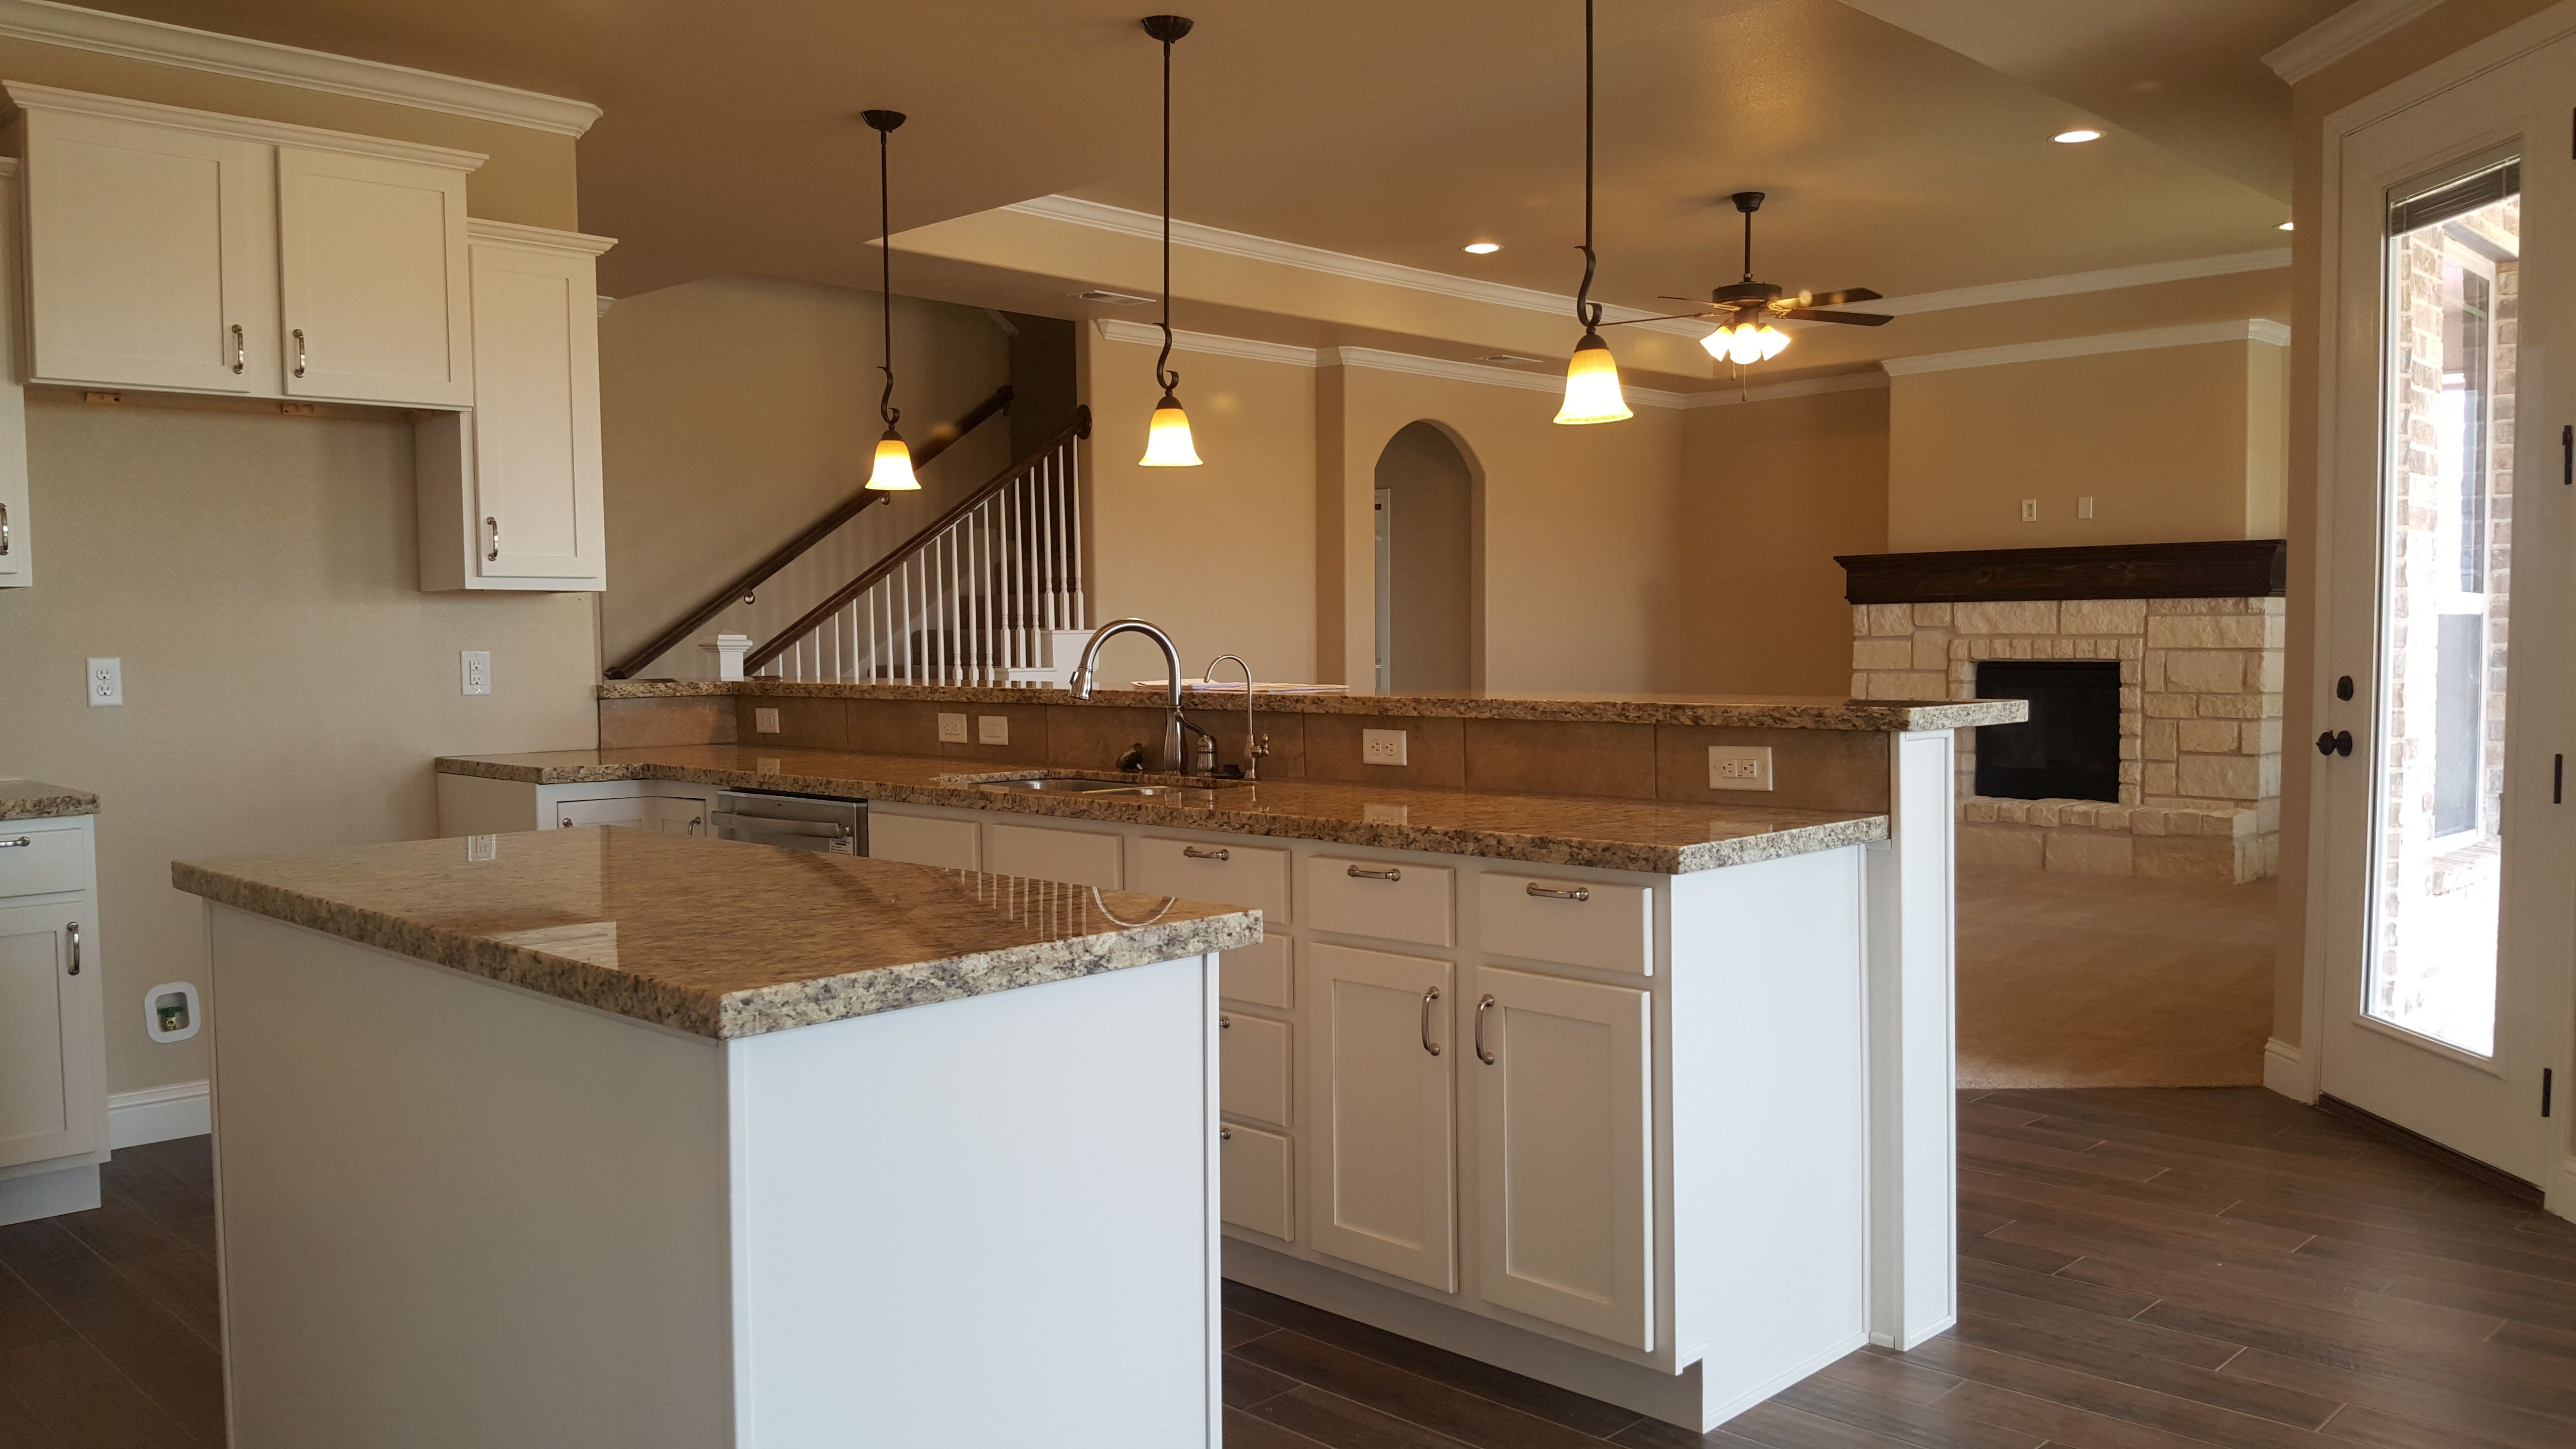 A Custom Kitchen Layout In The Giana Ivory Painted Cabinets New Venetian Gold Granite New Venetian Gold Granite Light Granite Countertops Light Wood Kitchens